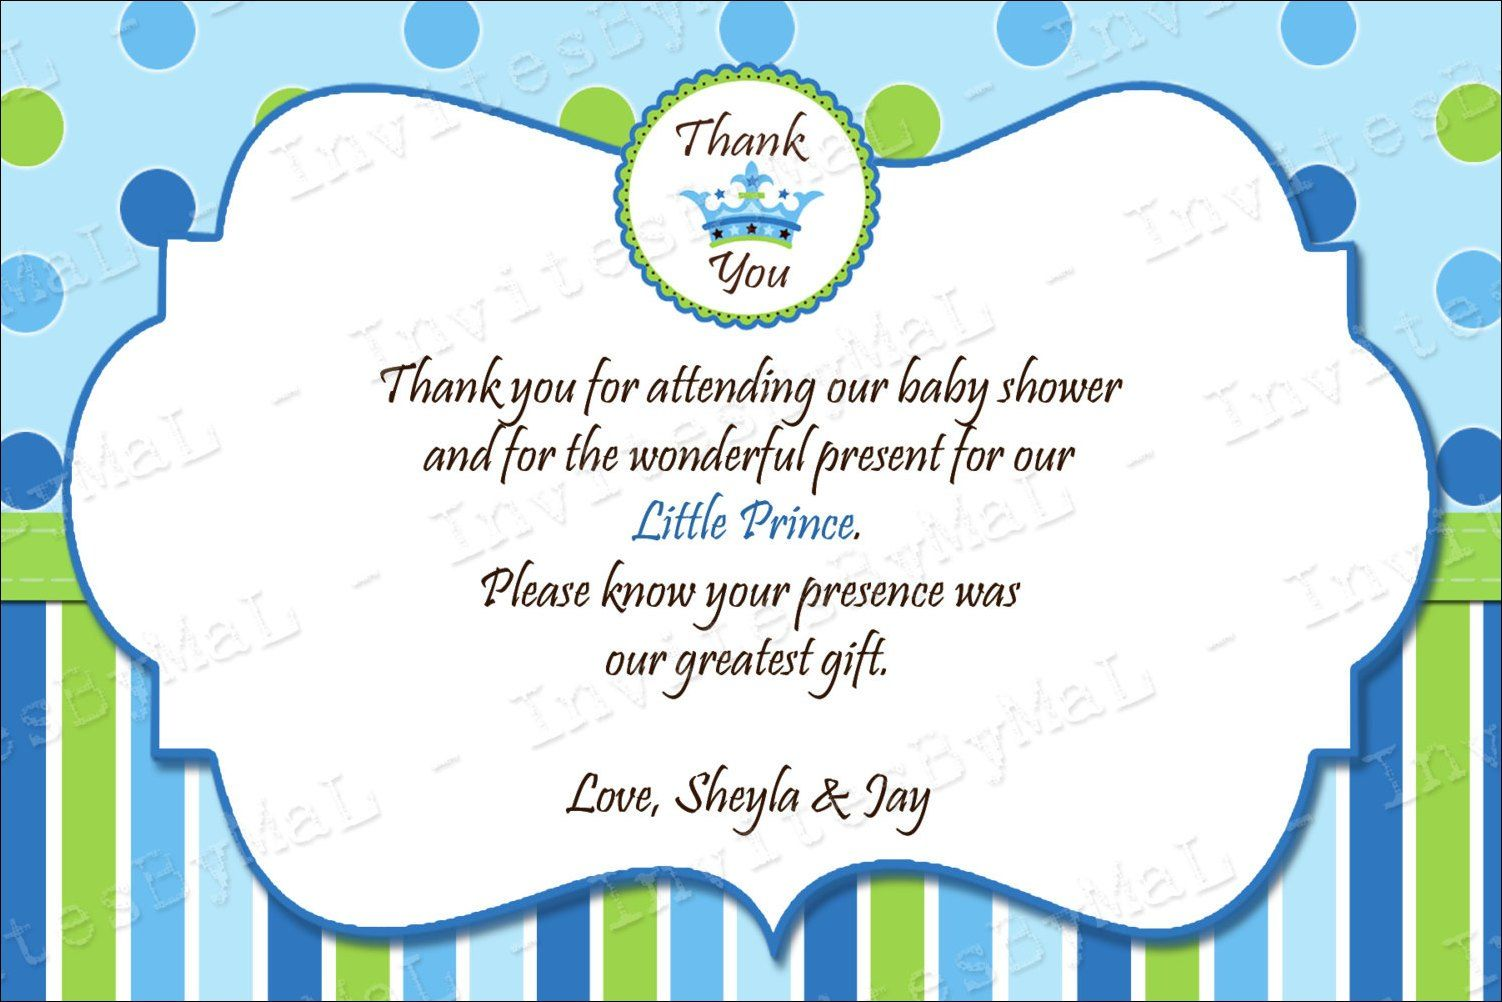 40 Beautiful Baby Shower Thank You Cards Ideas Viralinspirations Baby Shower Thank You Cards Baby Shower Thank You Beautiful Baby Shower